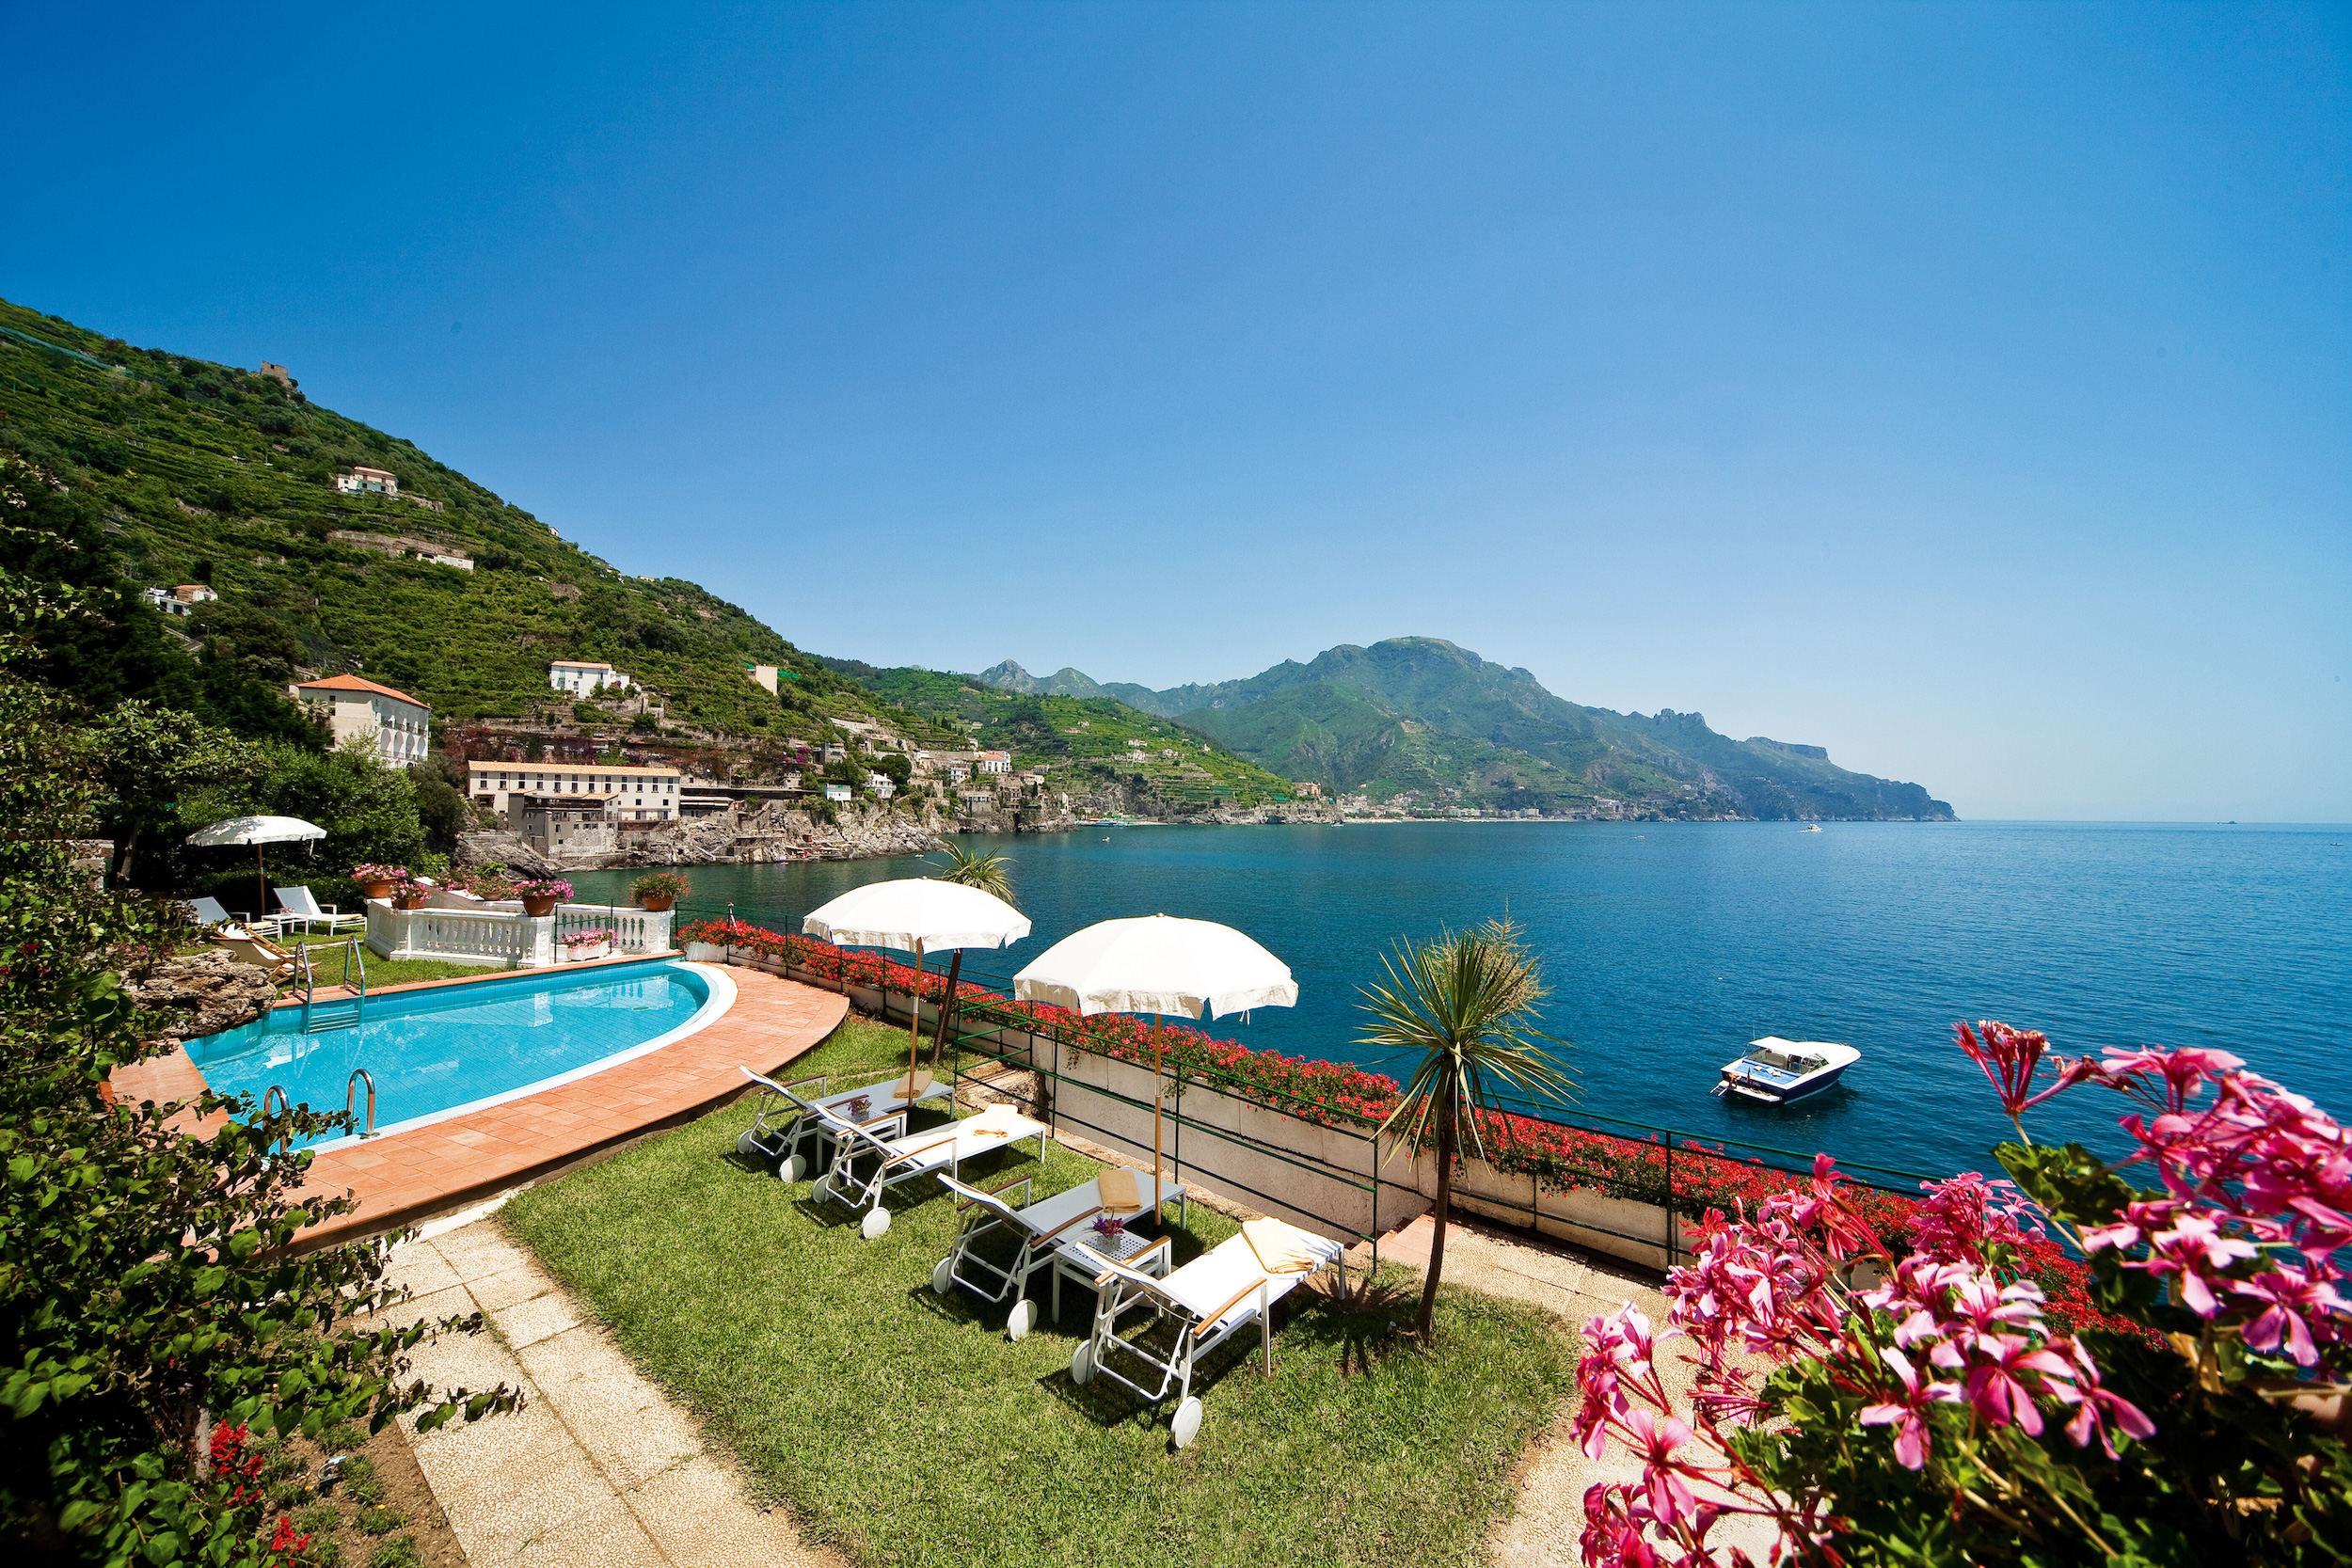 palazzo-avino-clubhouse-by-the-sea-swimming-pool.jpg